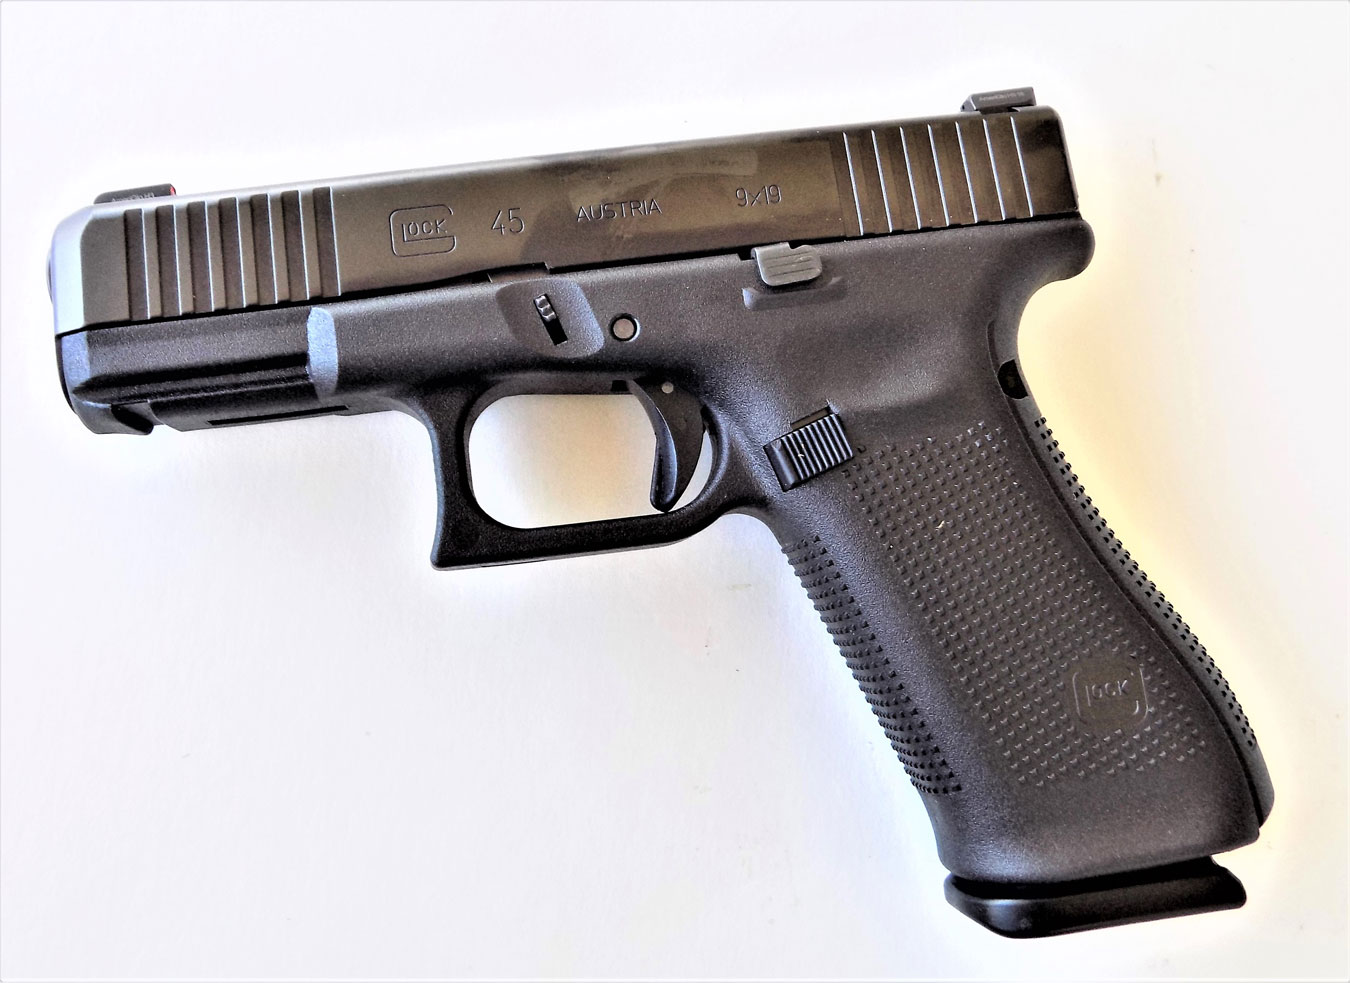 Glock G45 pistol left profile